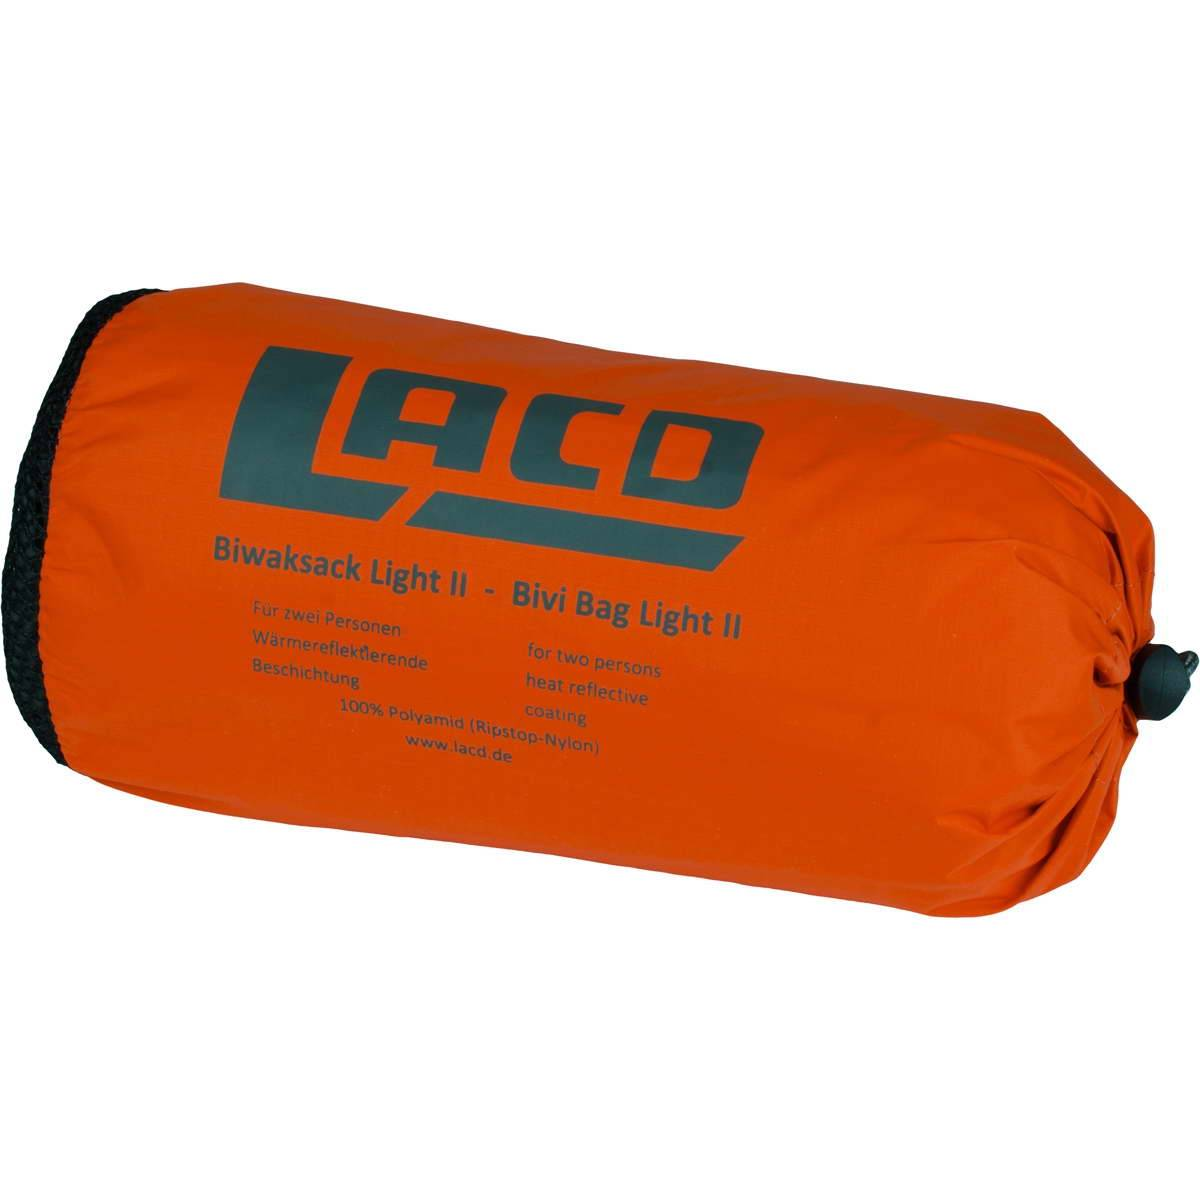 LACD Bivy Bag Light 2 - Biwaksack - Bild 2